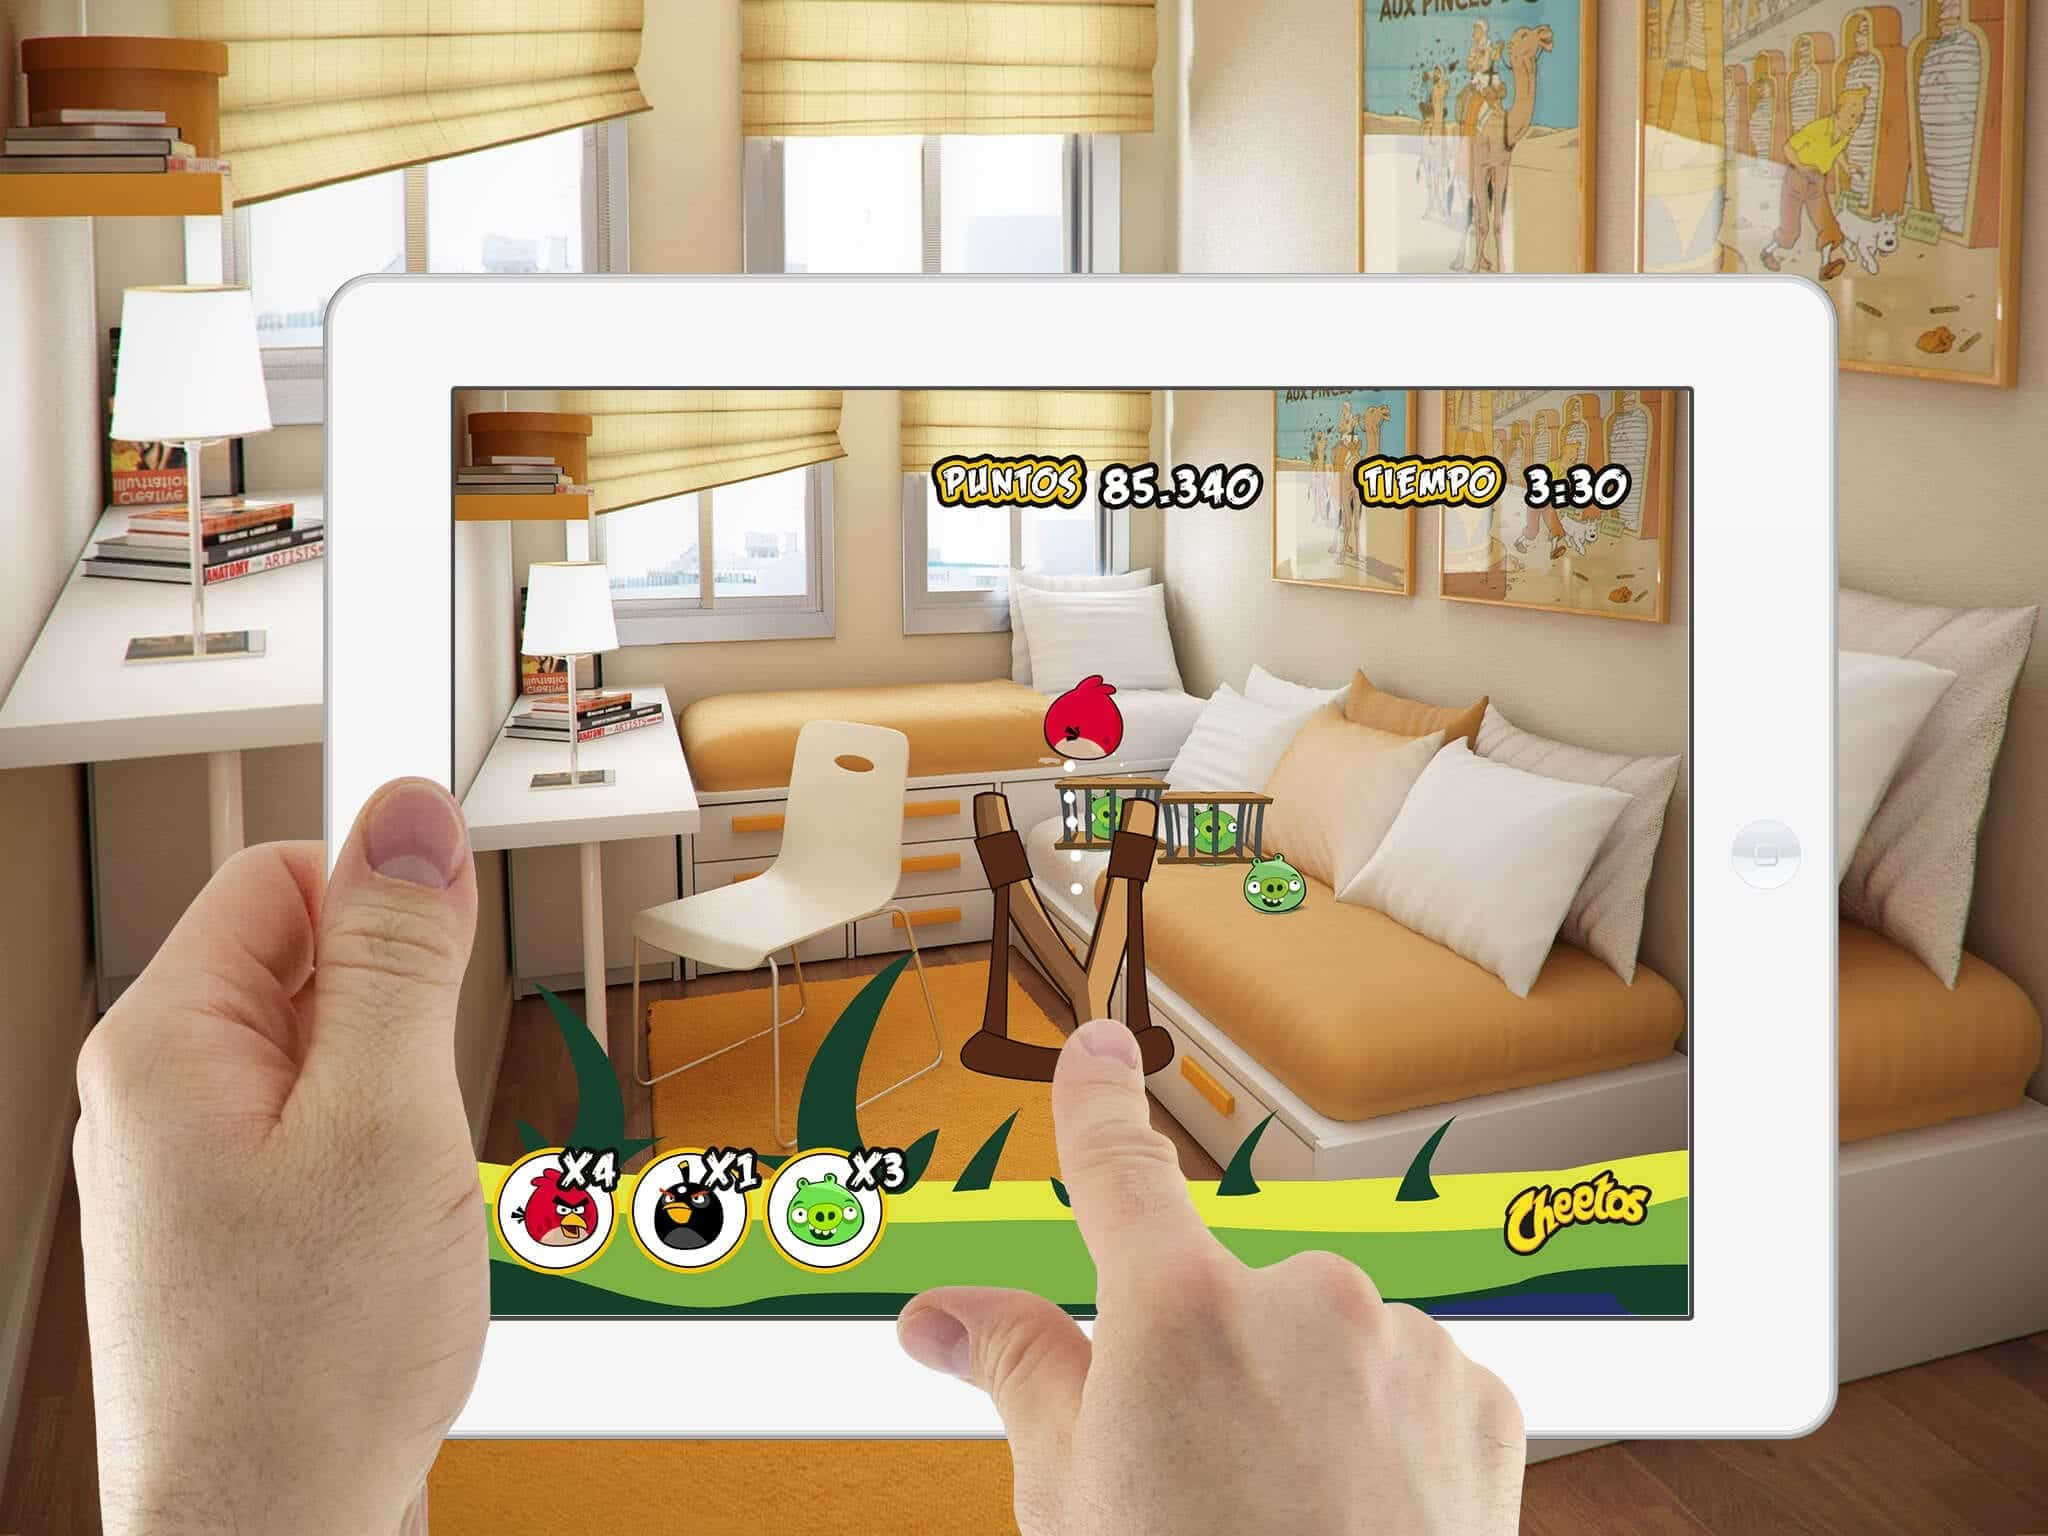 Augmented reality game Angry Birds Cheetos